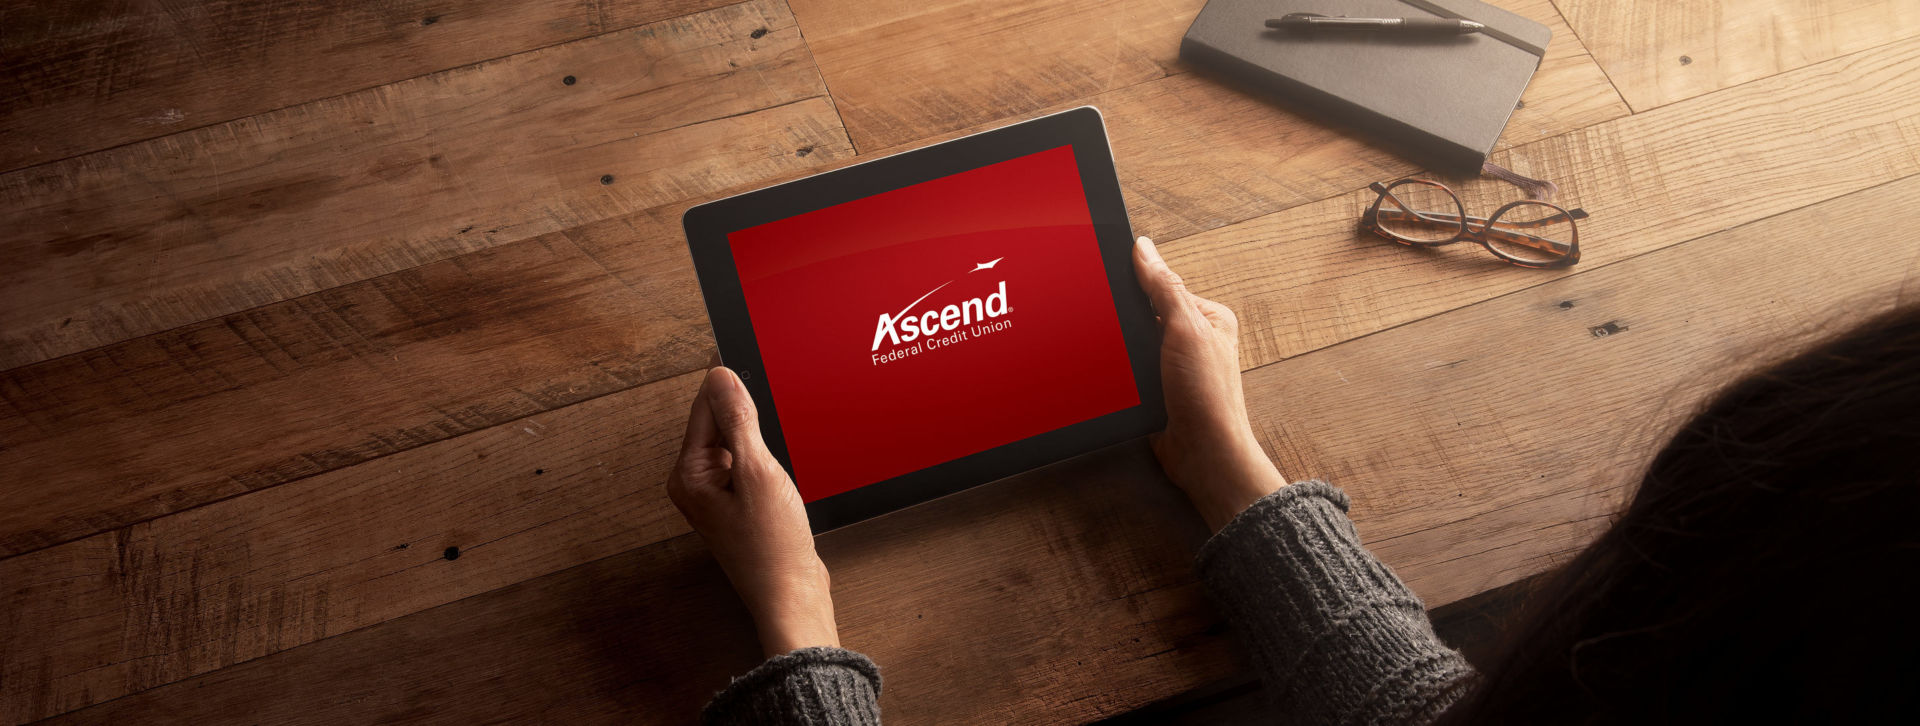 Woman holding tablet with the Ascend logo displayed.